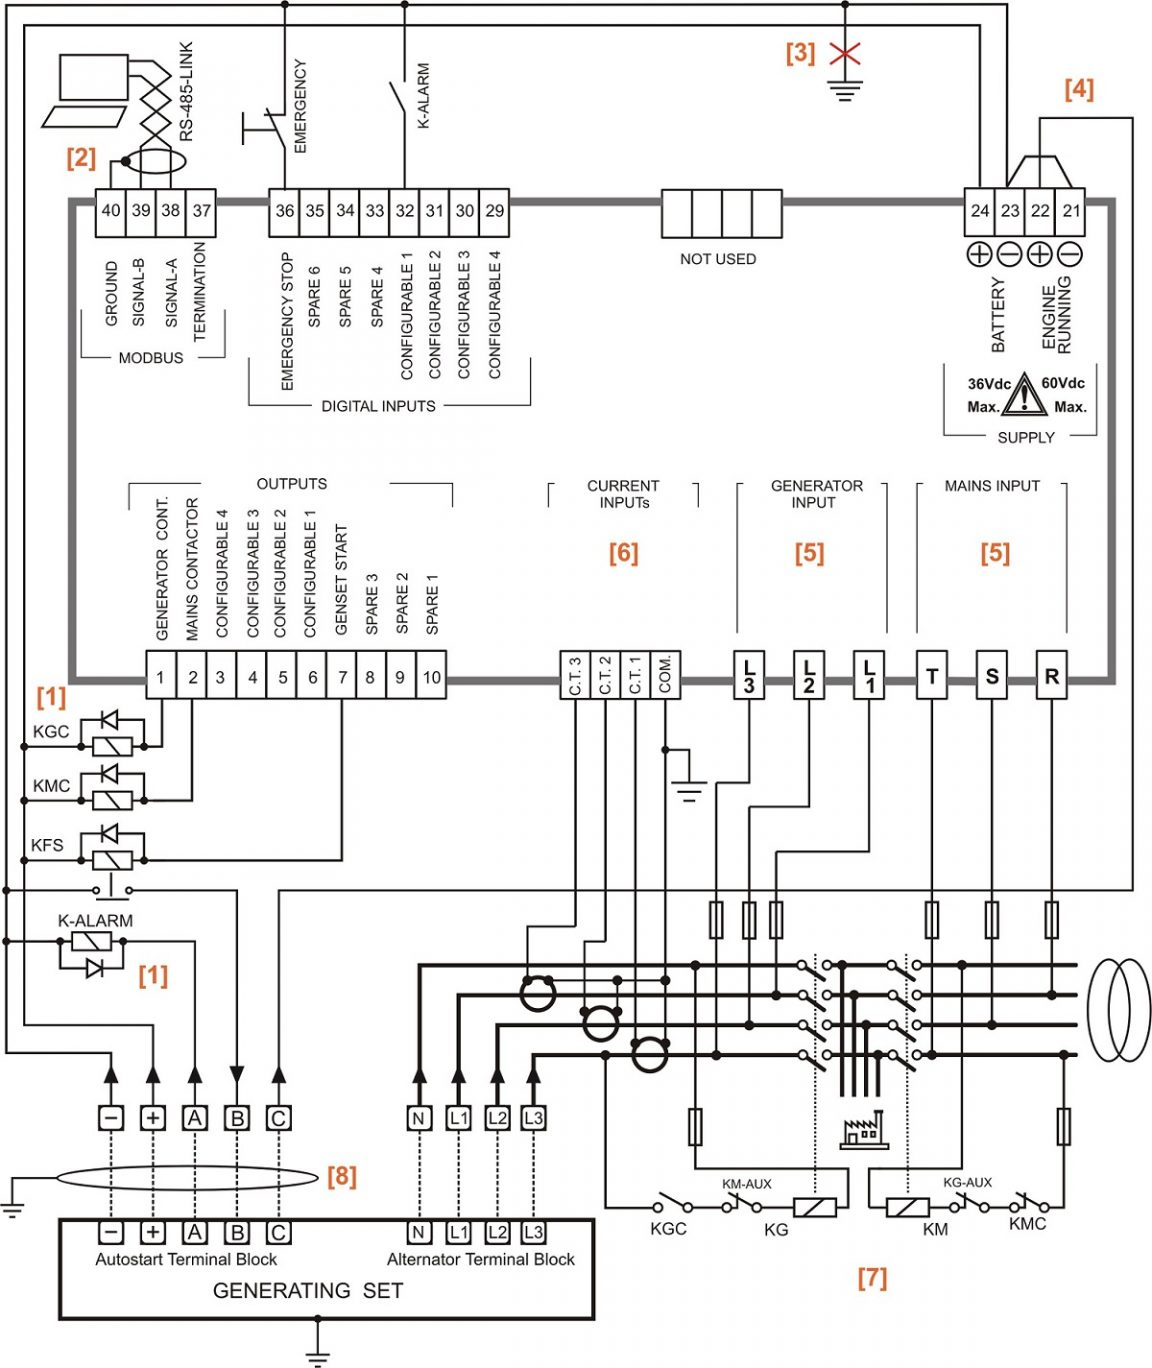 asco wiring diagram ceiling fan with light two switches transfer switch automatic series 300 collectionasco